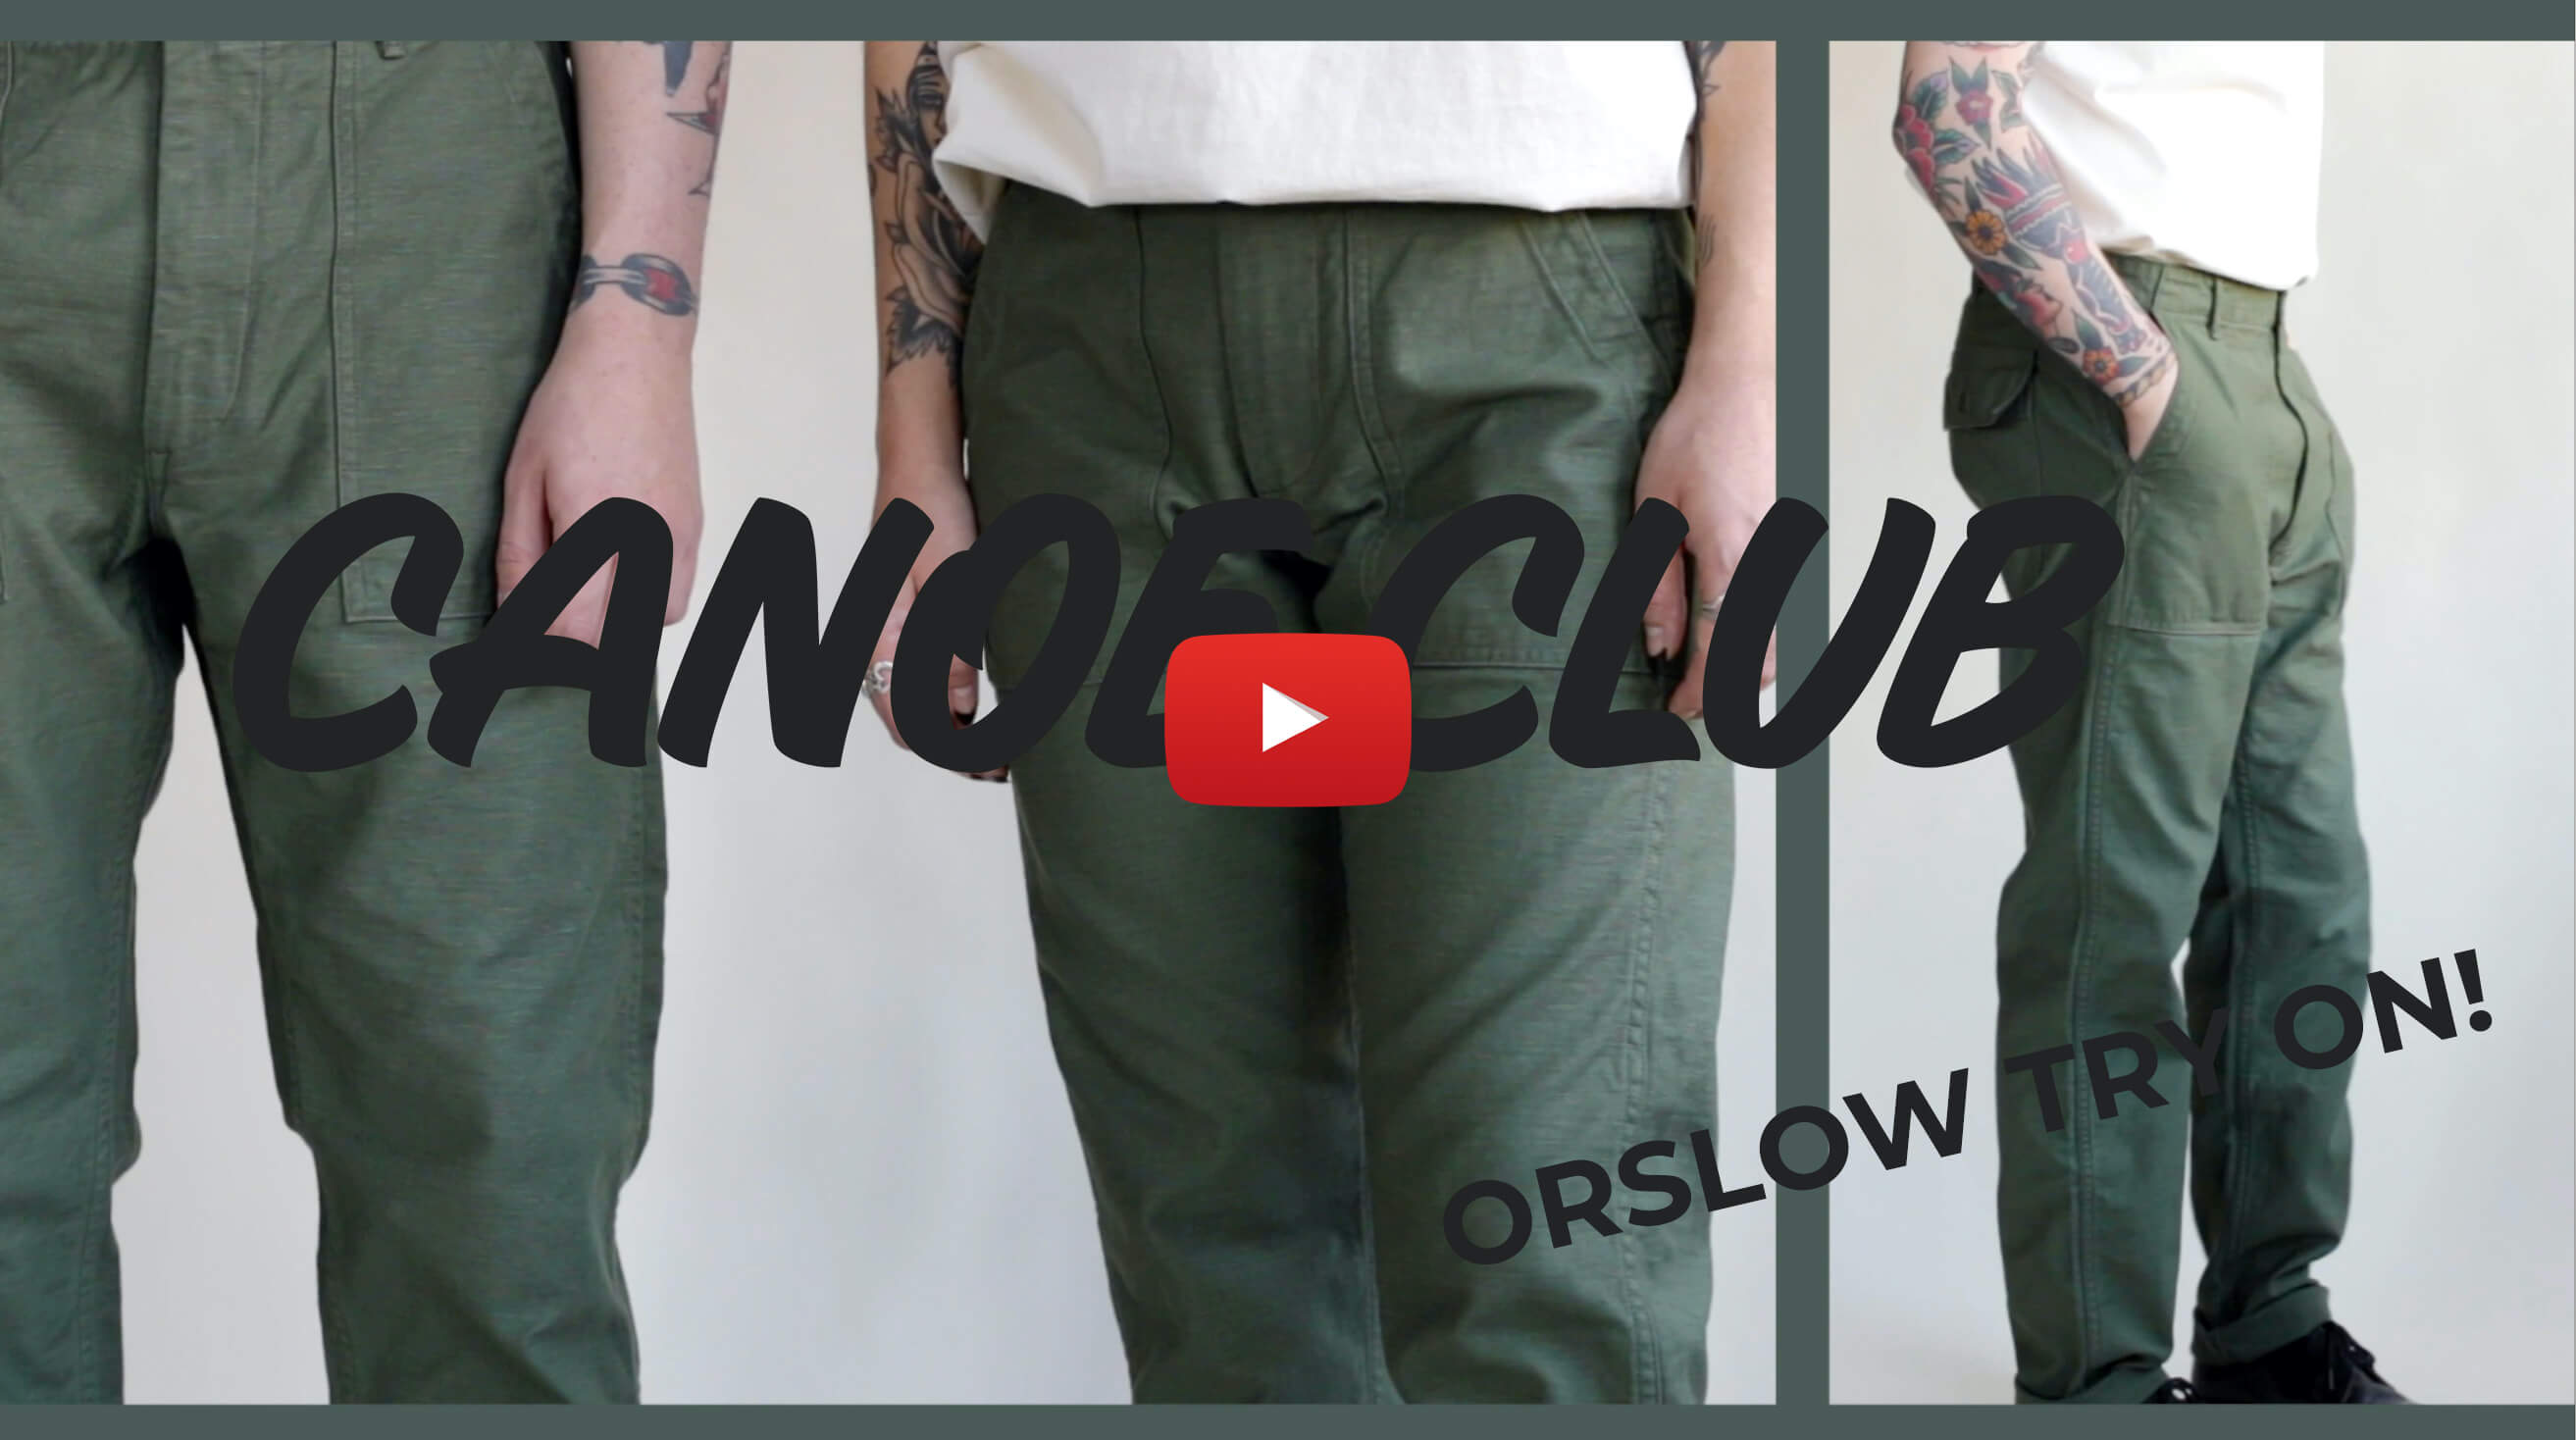 video for orslow core pants try-on